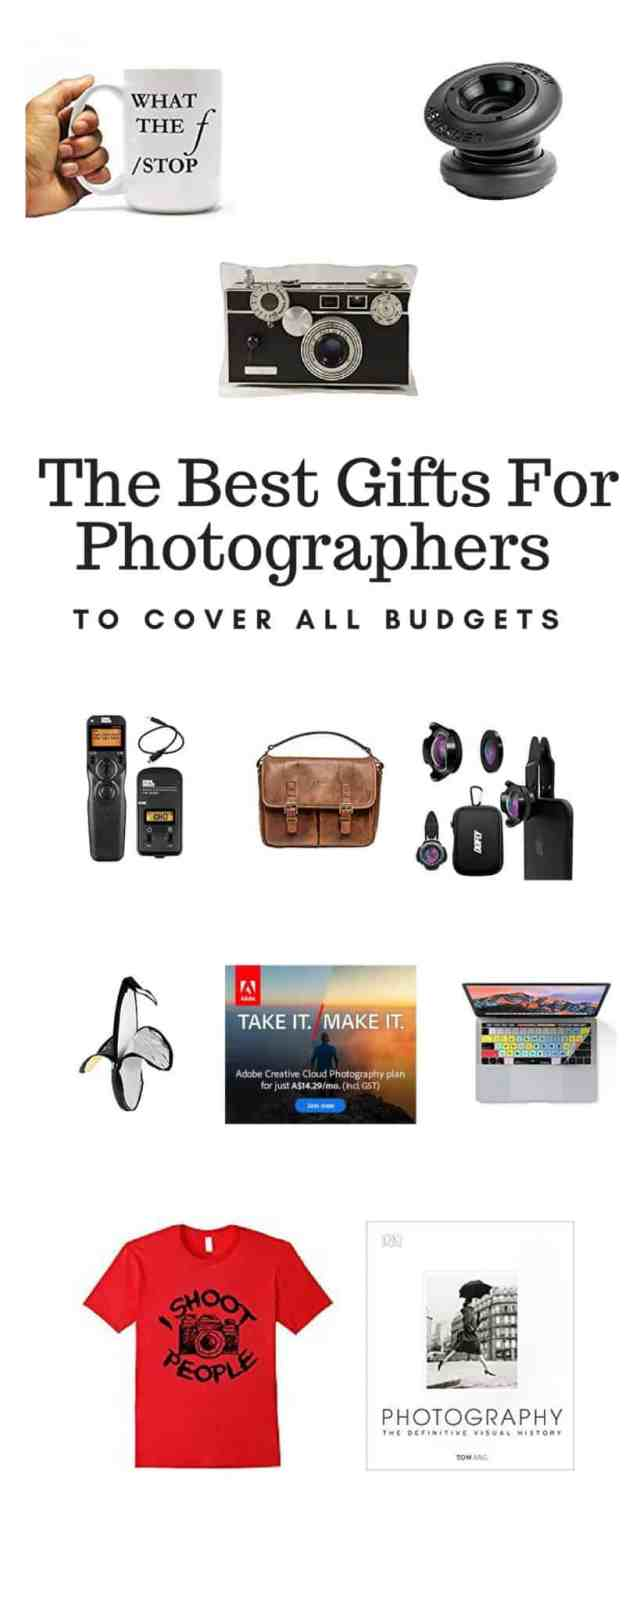 The Best Gifts For Photographers to cover all budgets